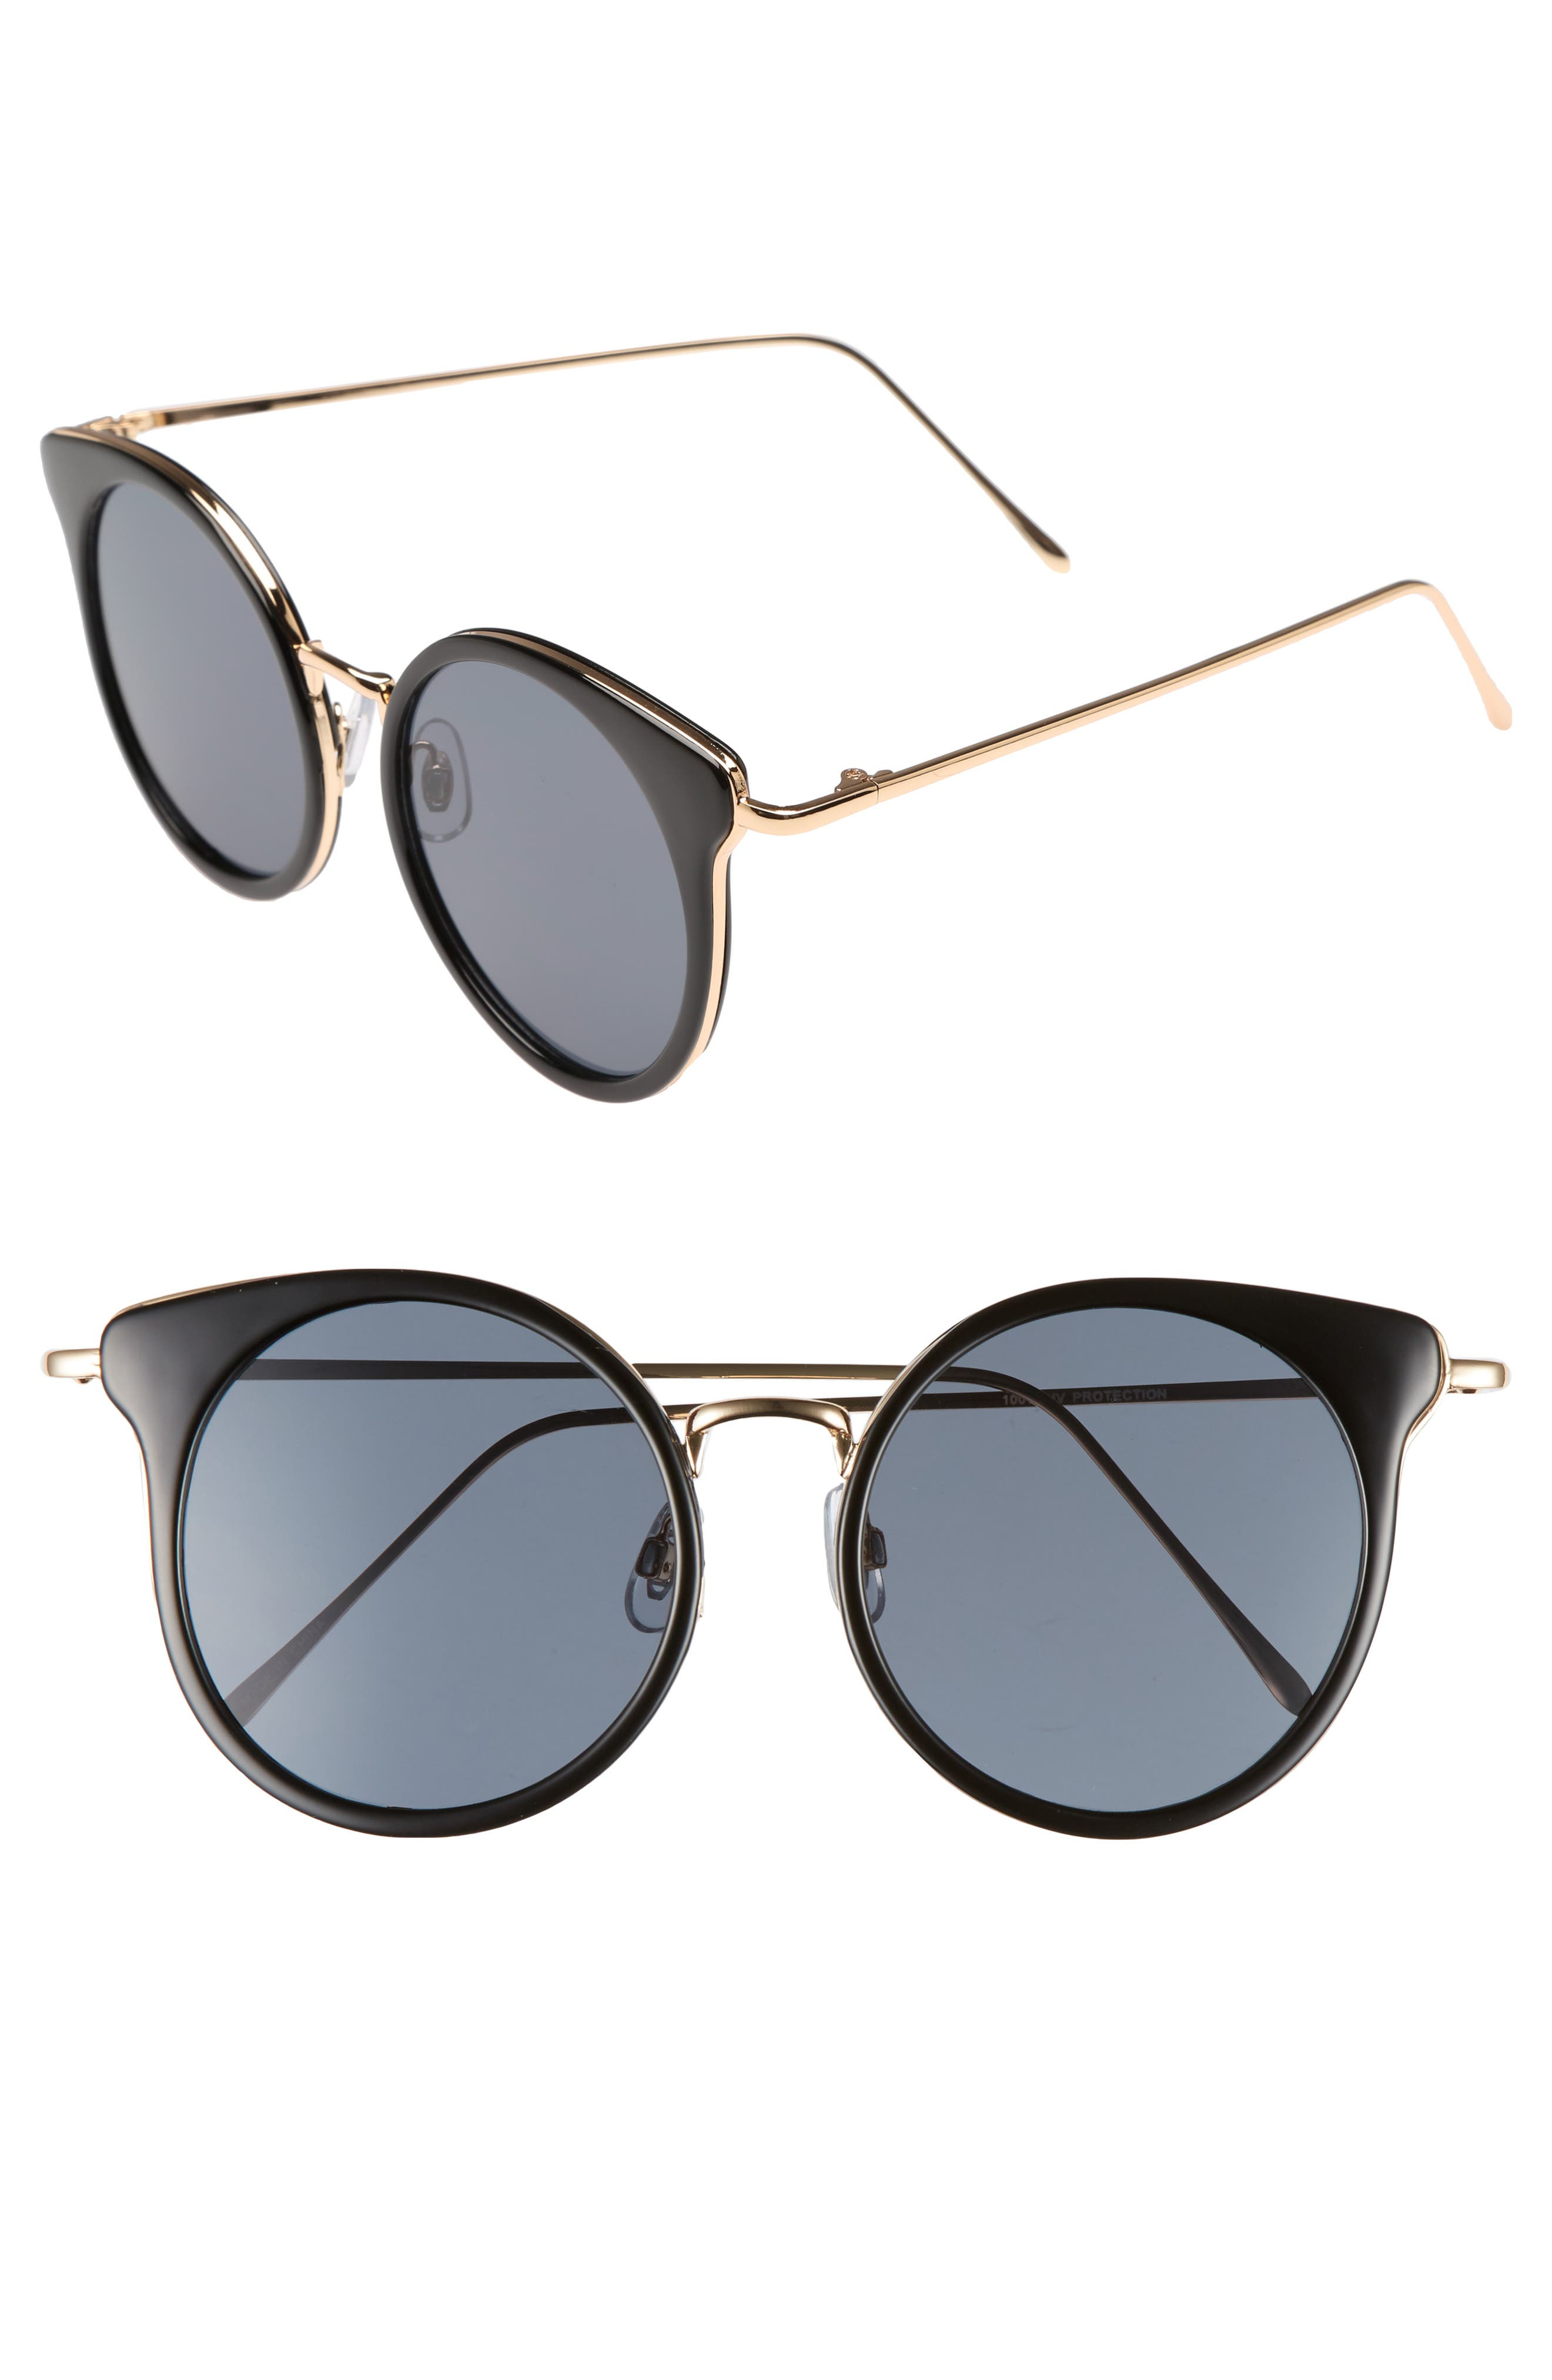 Alternate Image 1 Selected - BP. Round Wing Sunglasses